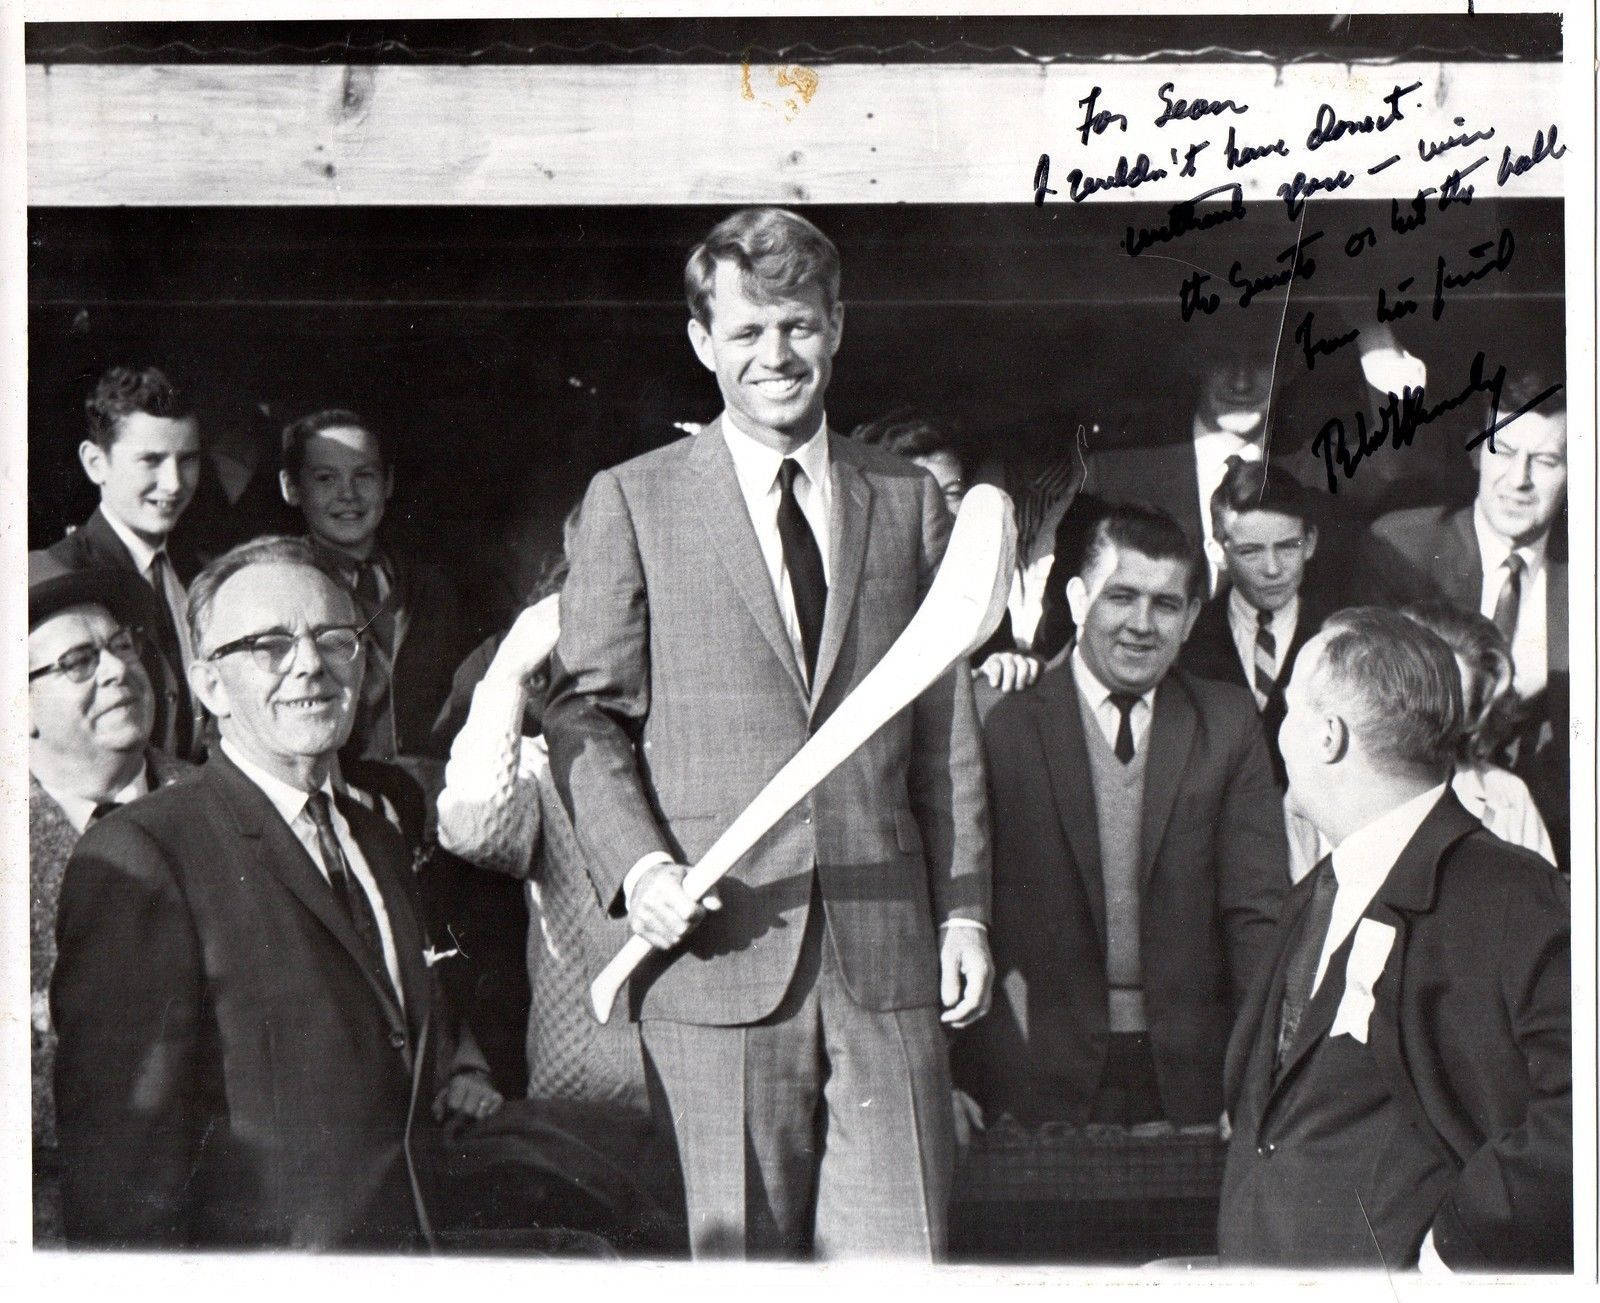 ROBERT F. KENNEDY Signed 8x10 photograph - possibly one of a kind photo